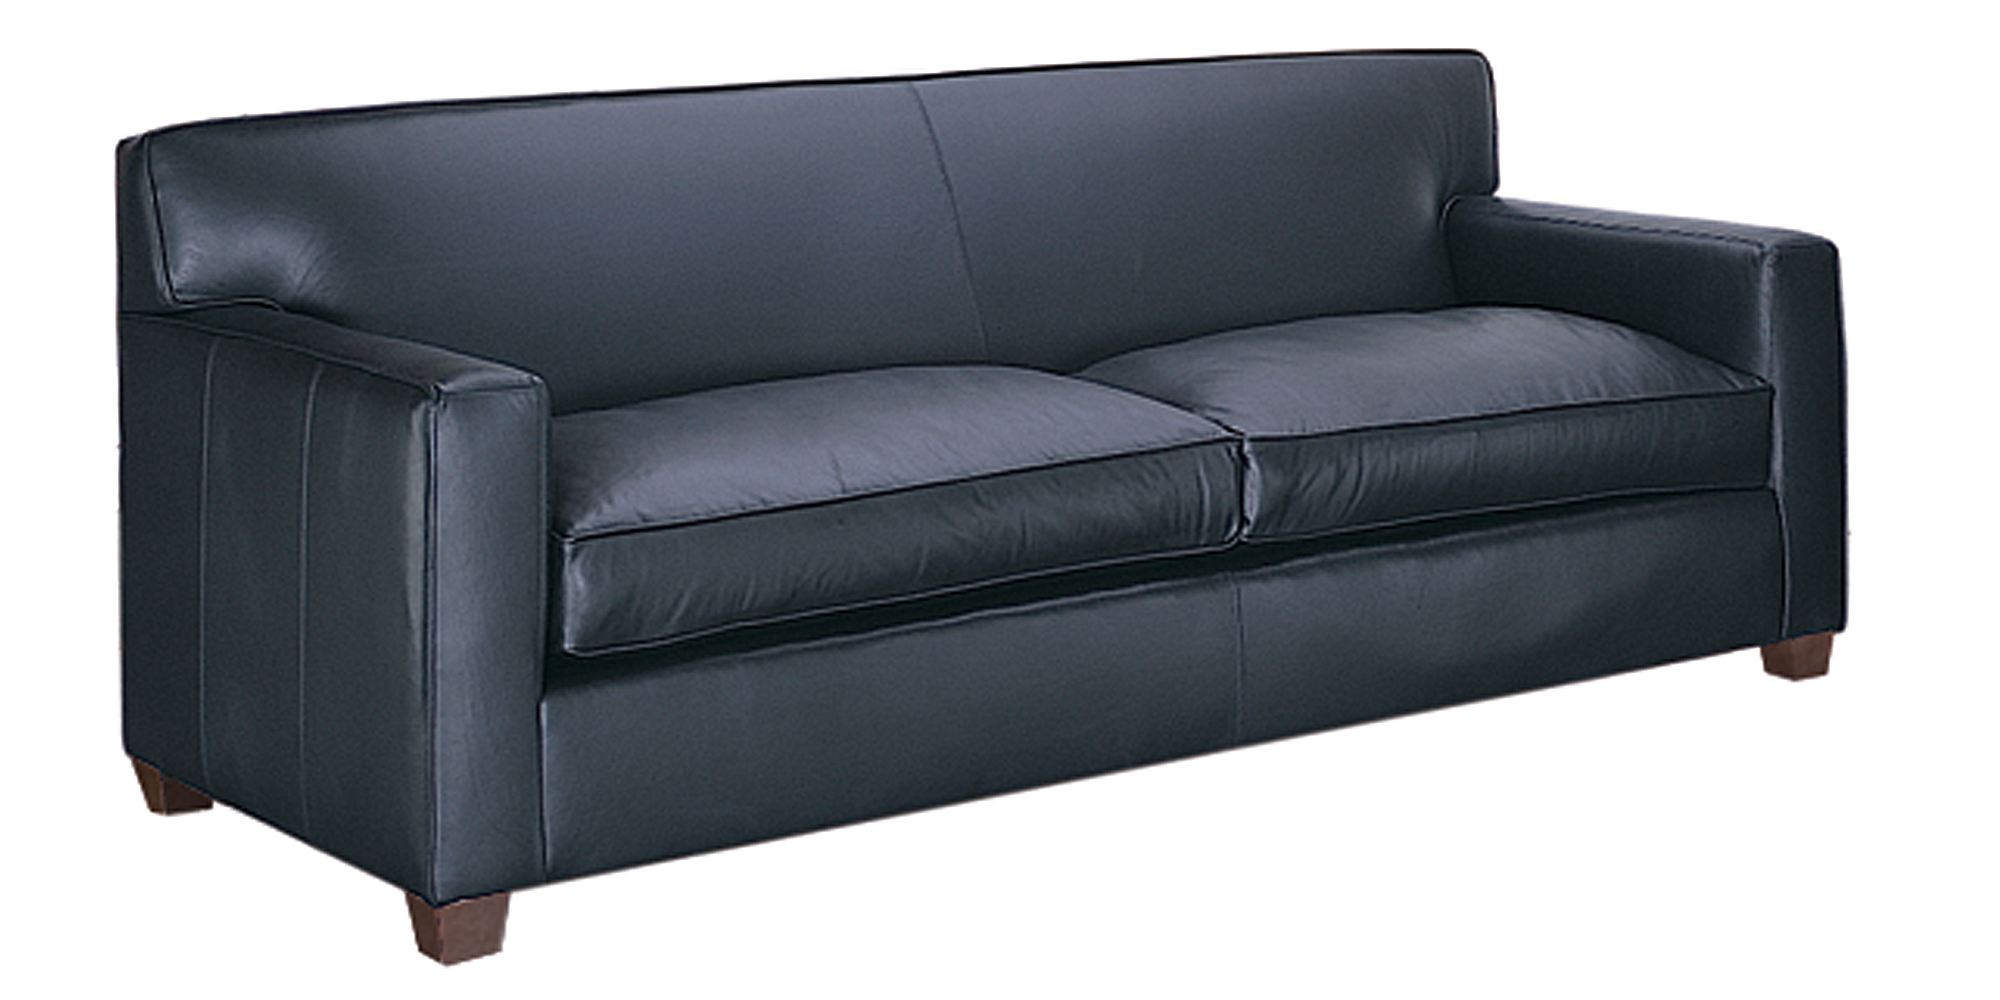 Modern leather track arm couch and chair with ottoman for Modern leather furniture